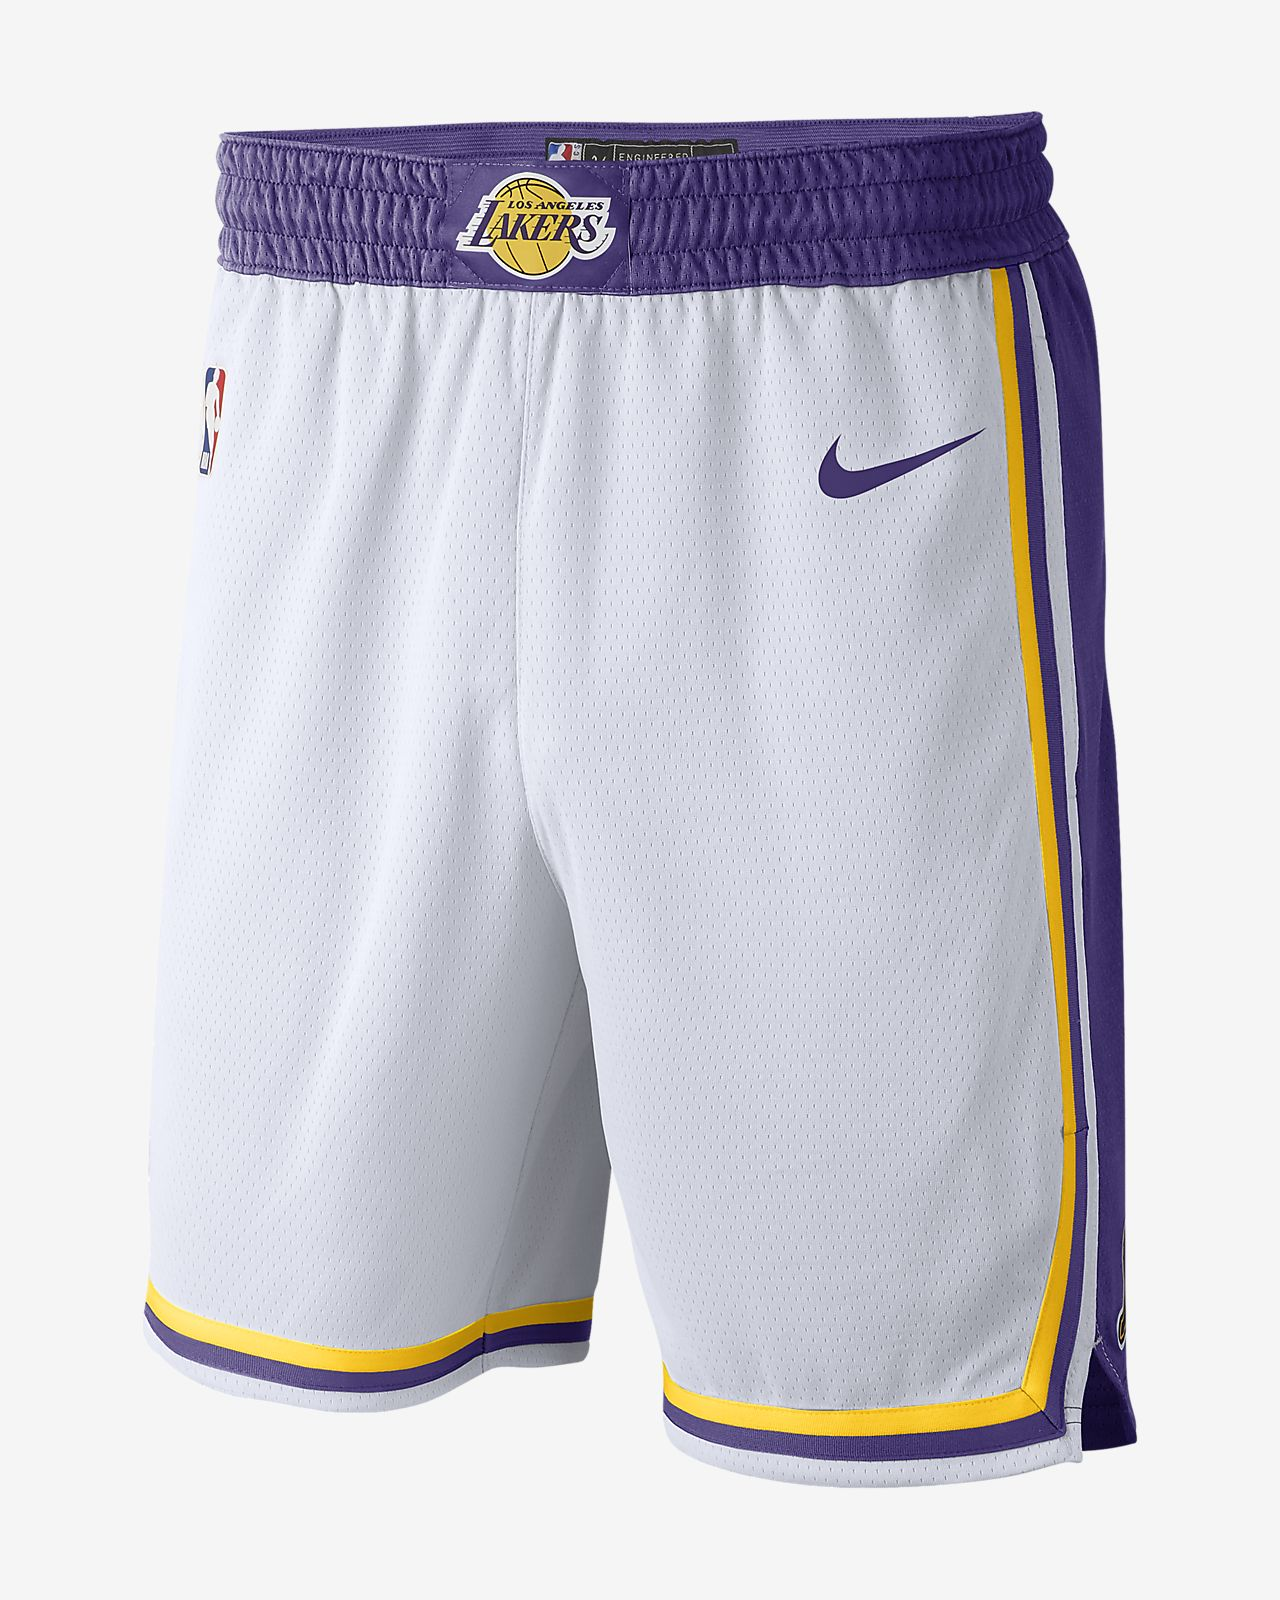 Men s Nike NBA Shorts. Los Angeles Lakers Association Edition Swingman 187e2f33b972